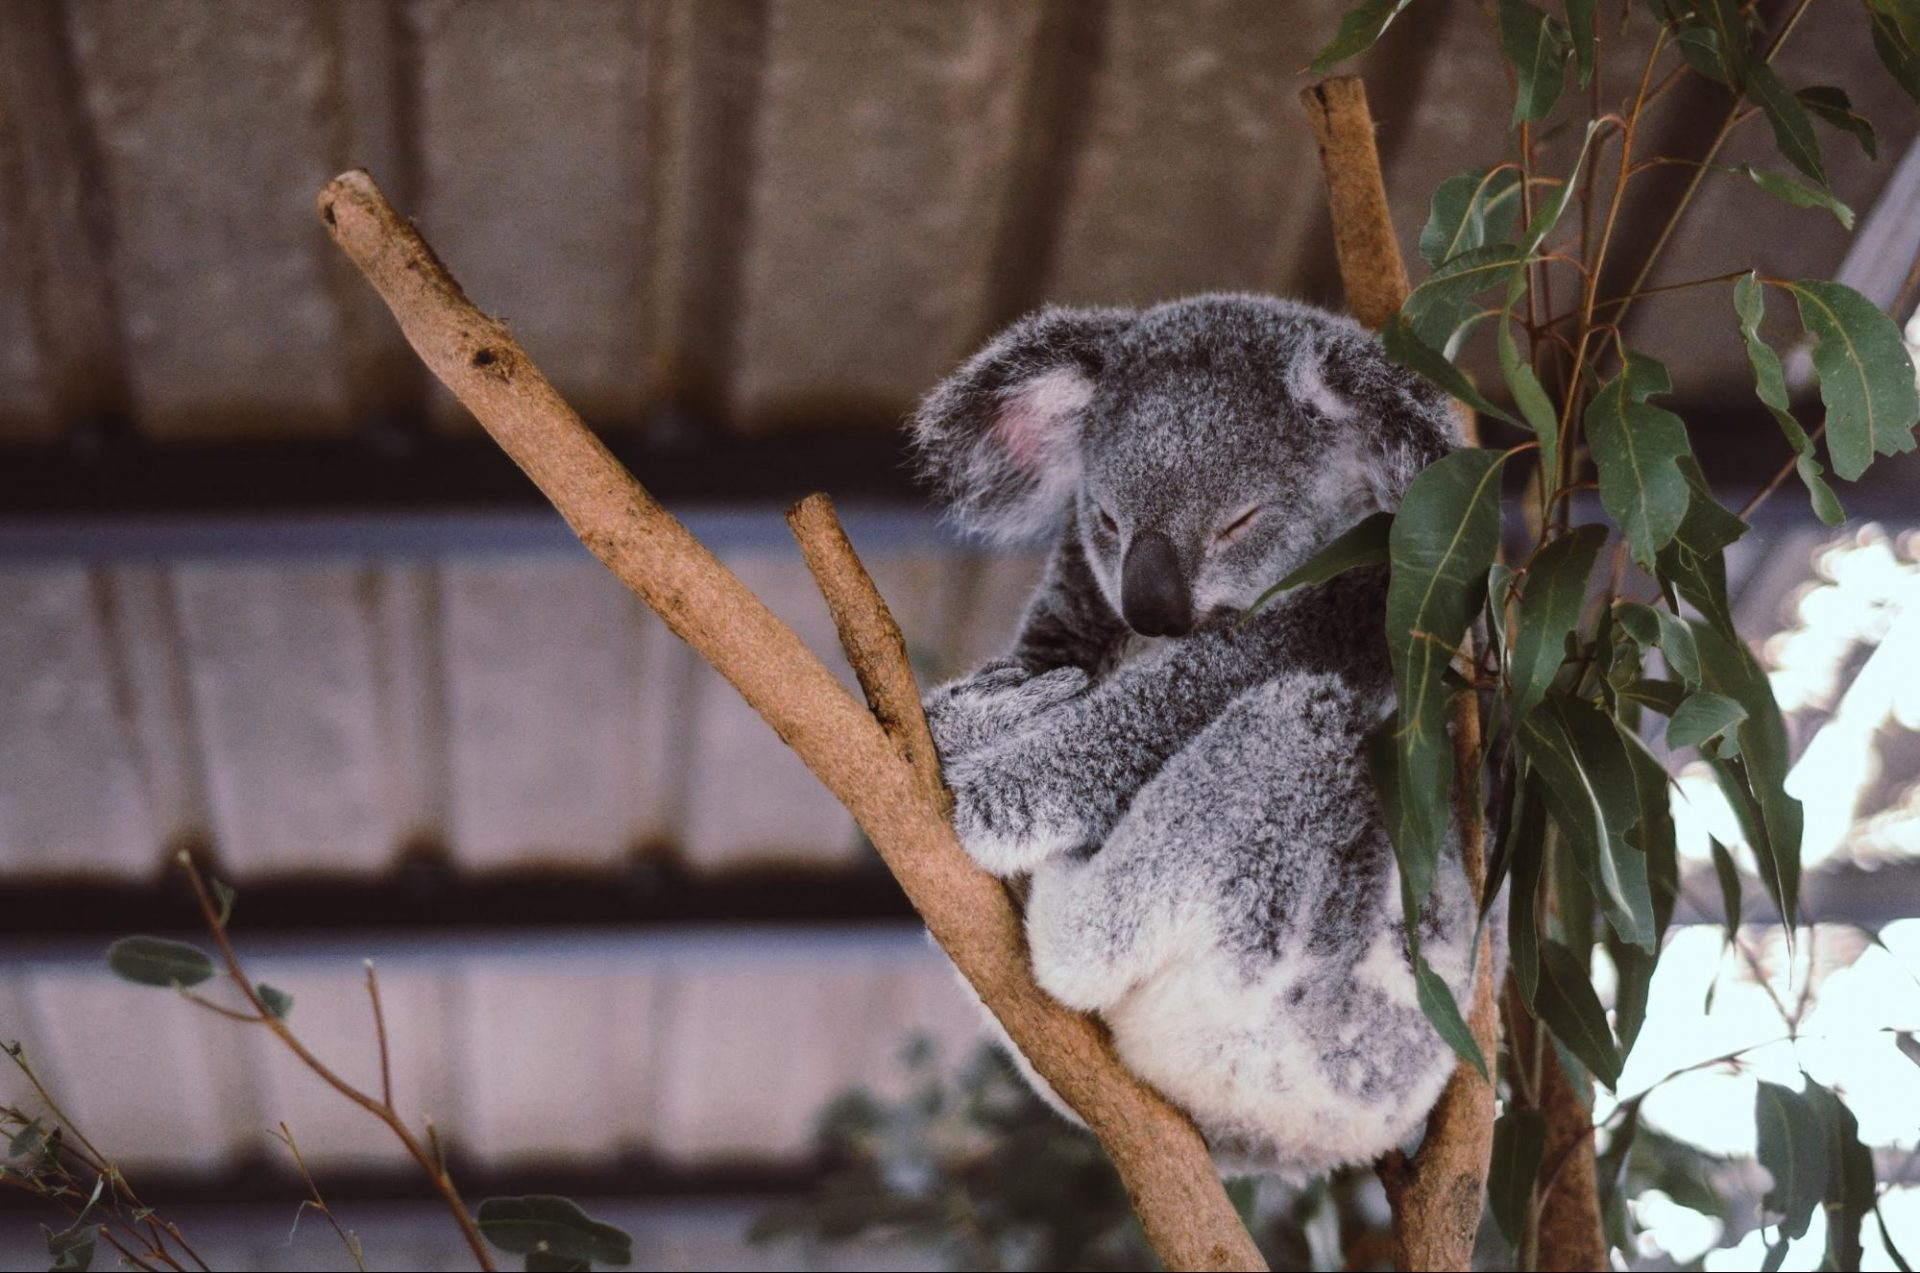 image 5 Work, Study or Volunteer - How to See the Best of Australia on a Budget